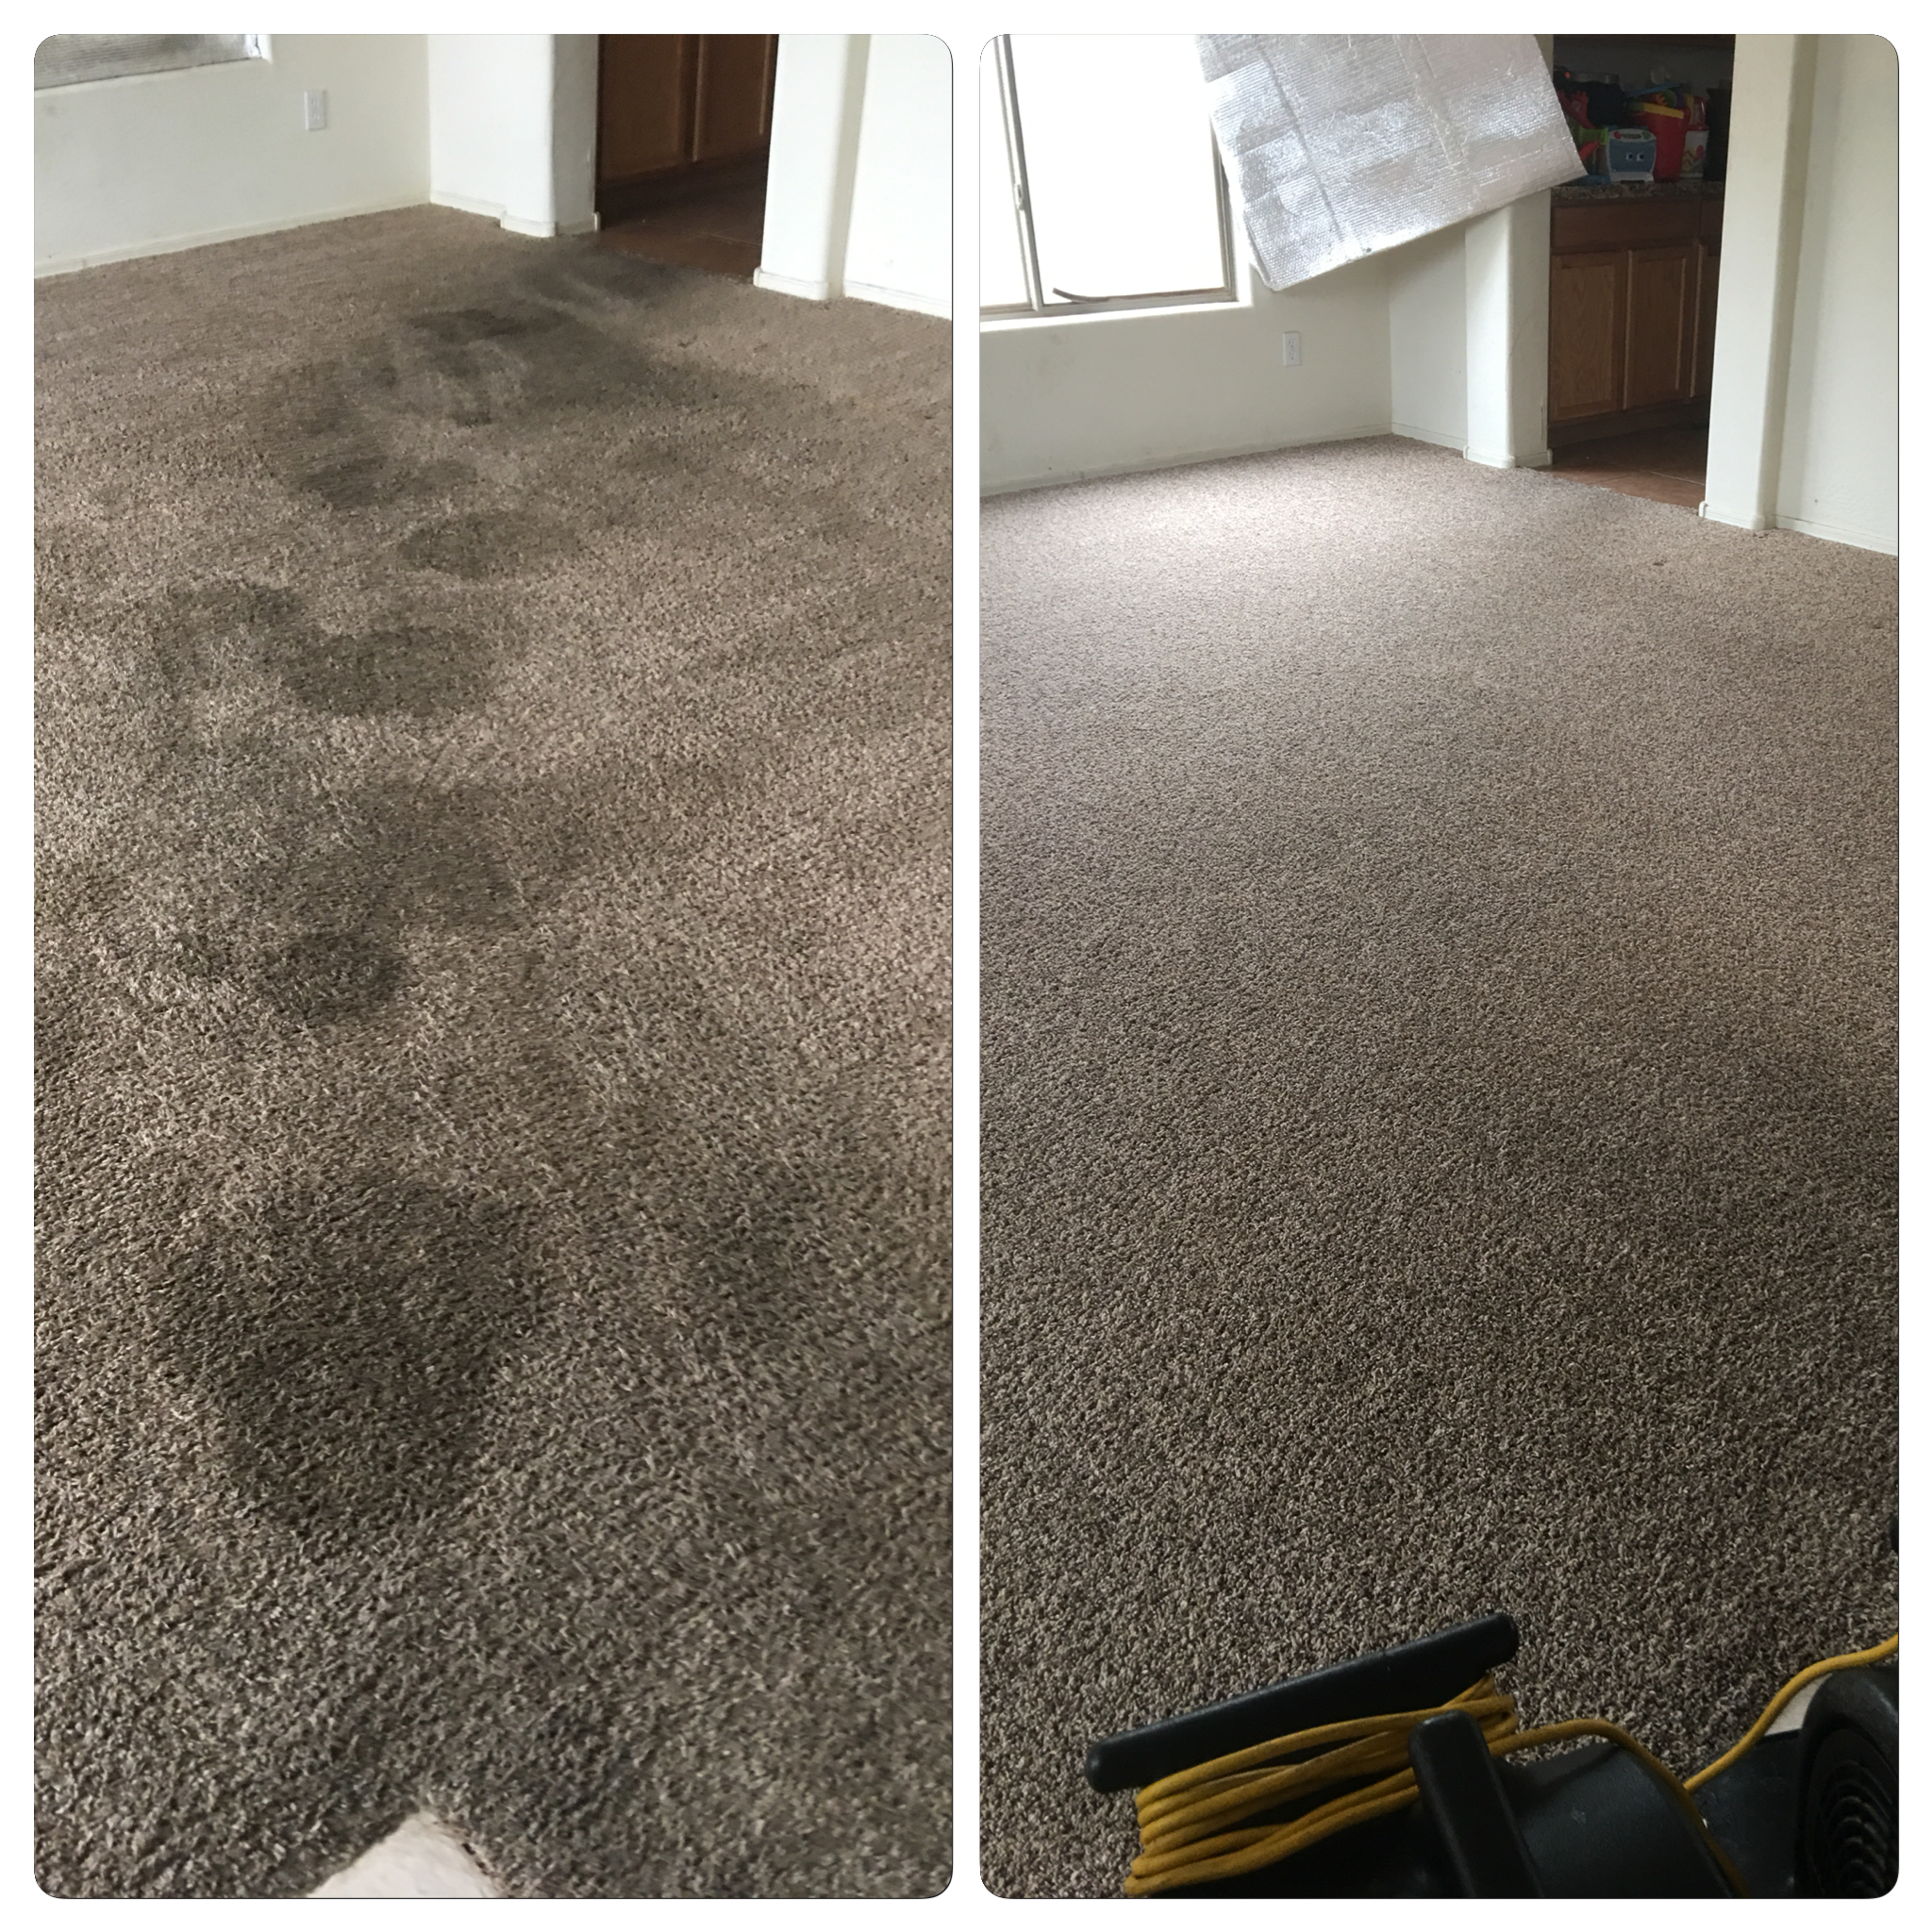 Dry Soil Removal on Carpet